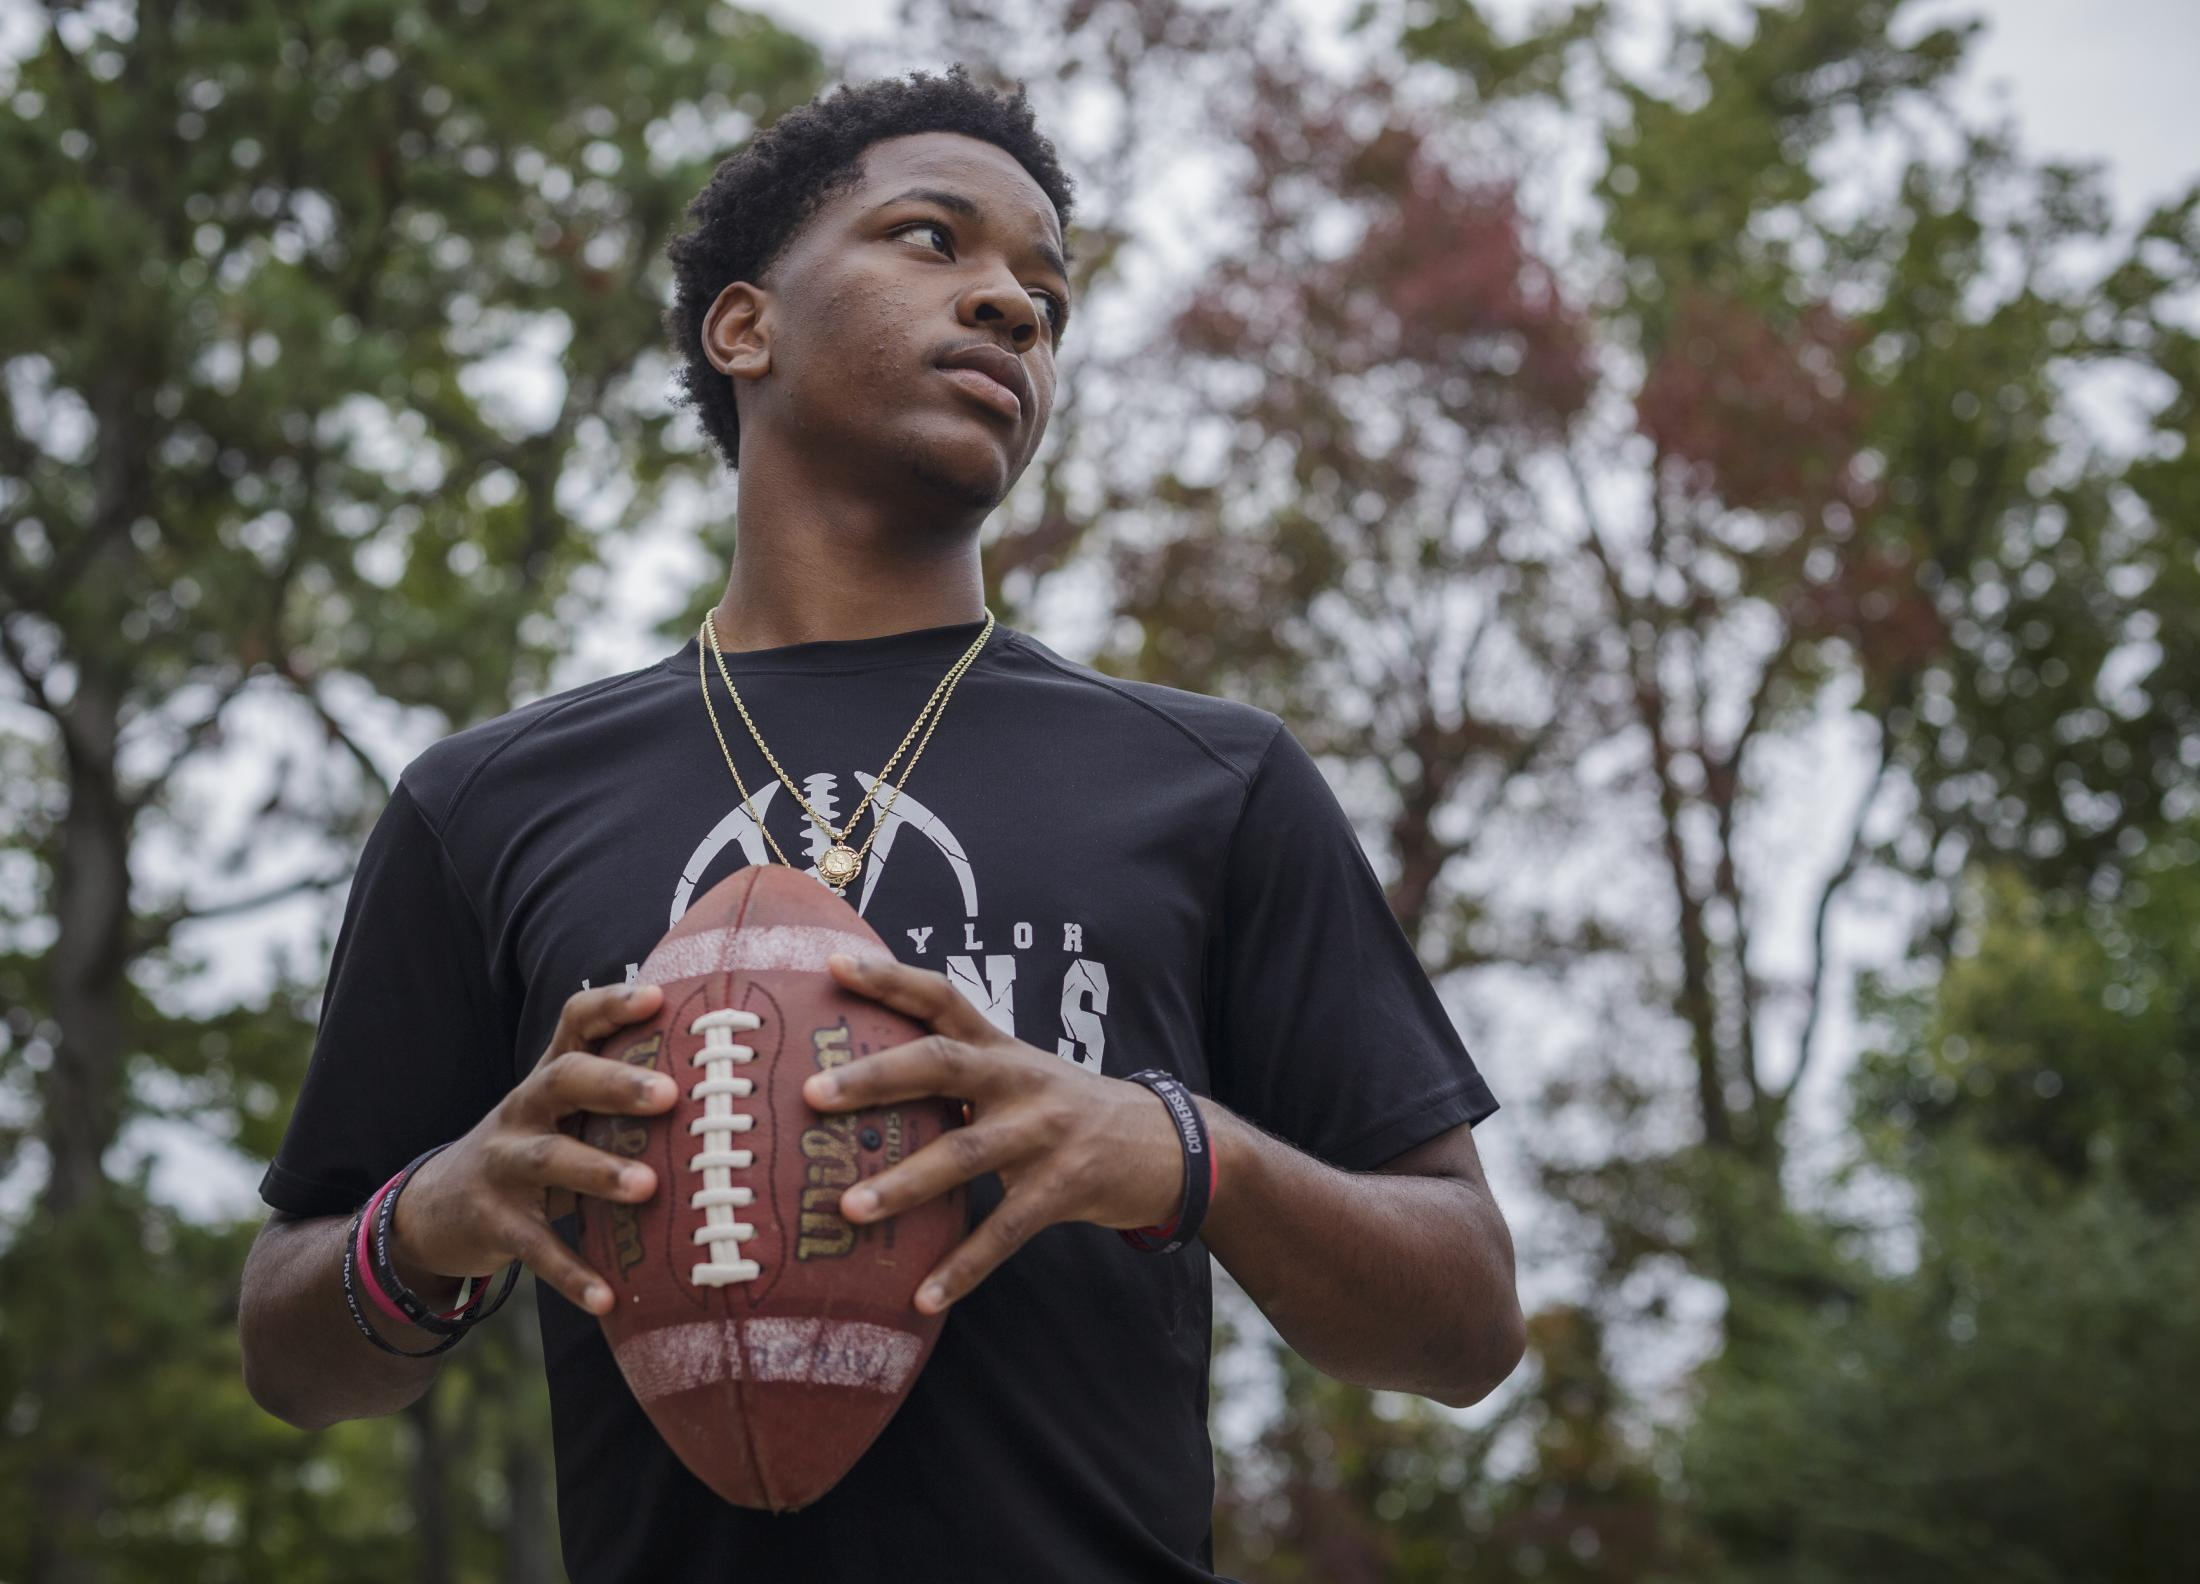 NORFOLK, VA – October 29, 2020: Pierre Royster, a member of the Lake Taylor High School TITANS, poses for a portrait outside his house. Due to the COVID-19 pandemic, football games were canceled at Lake Taylor High School in Norfolk, VA, leaving the TITANS members with plenty of free time. Carlos Bernate / The Undefeated